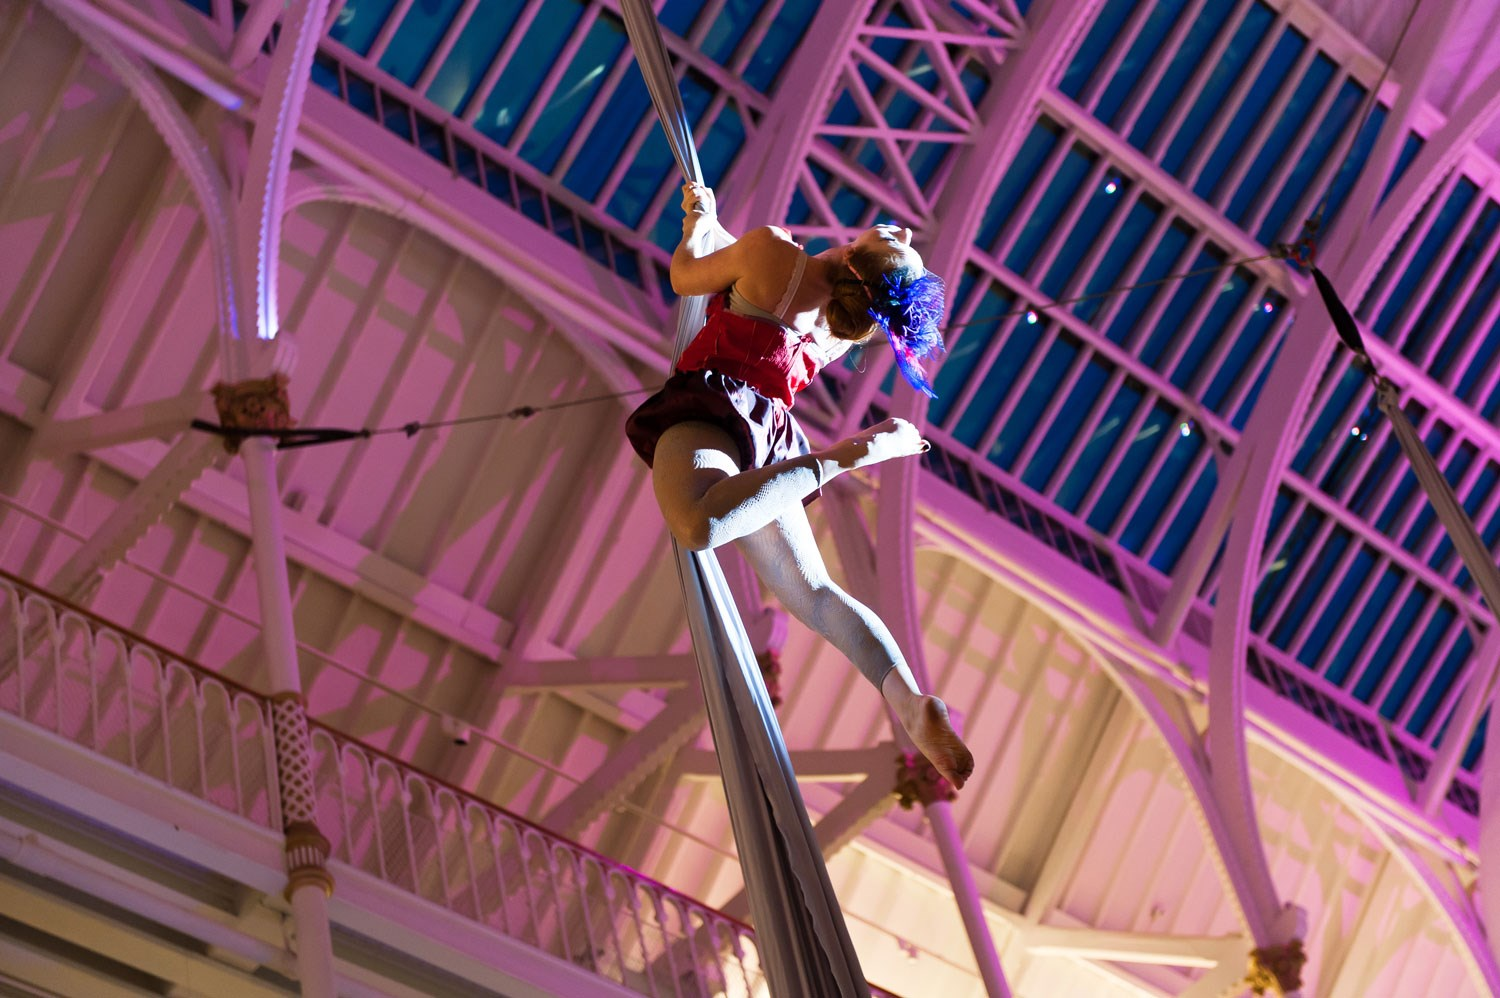 Aerial artist performing in the Grand Gallery